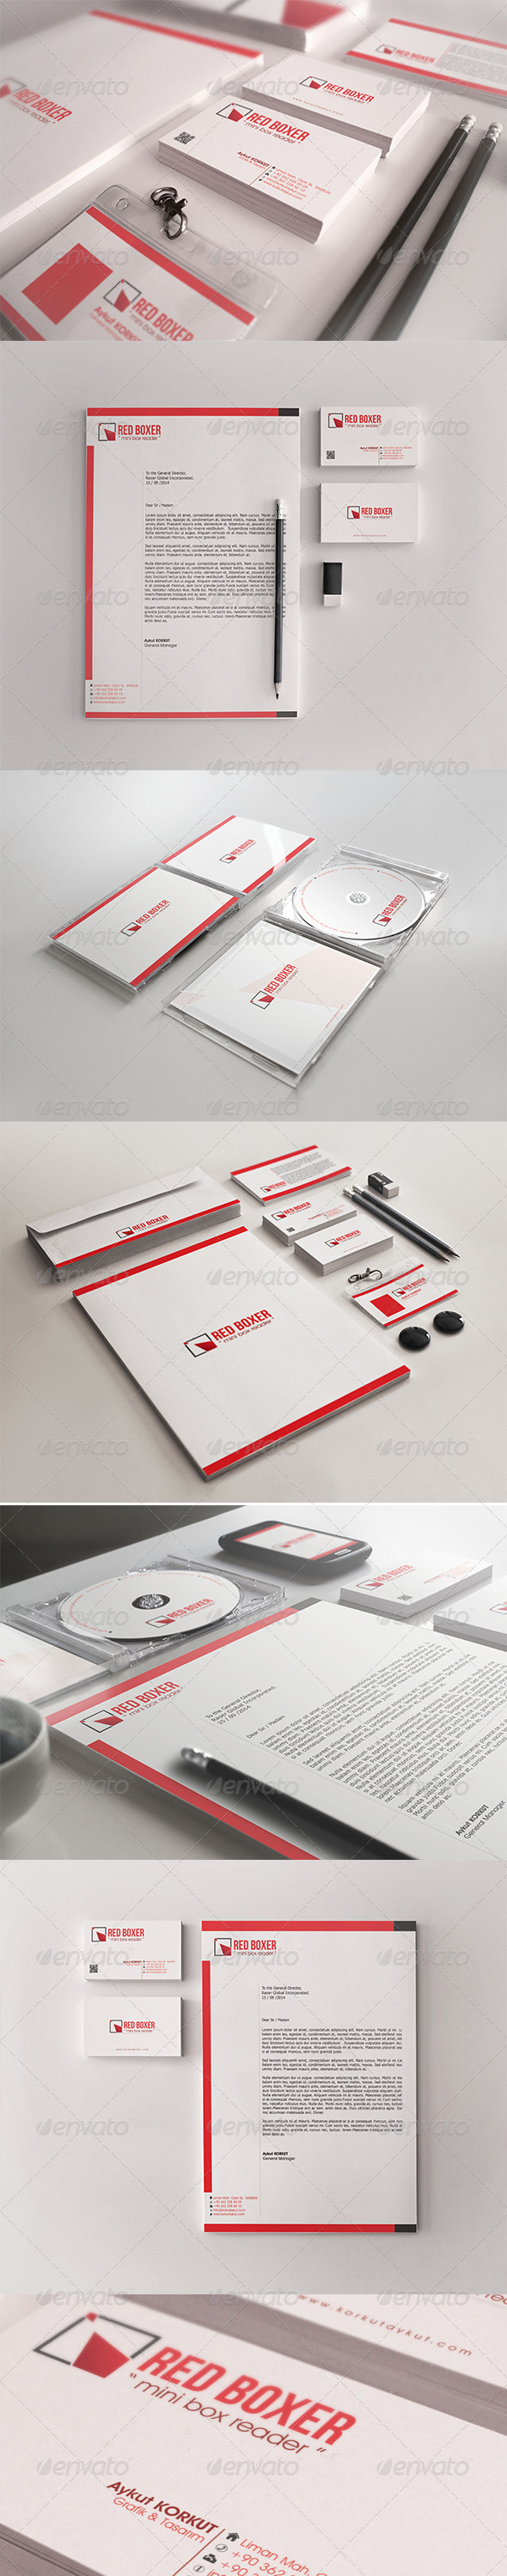 GraphicRiver Red Boxer Corporate Identity 7364010